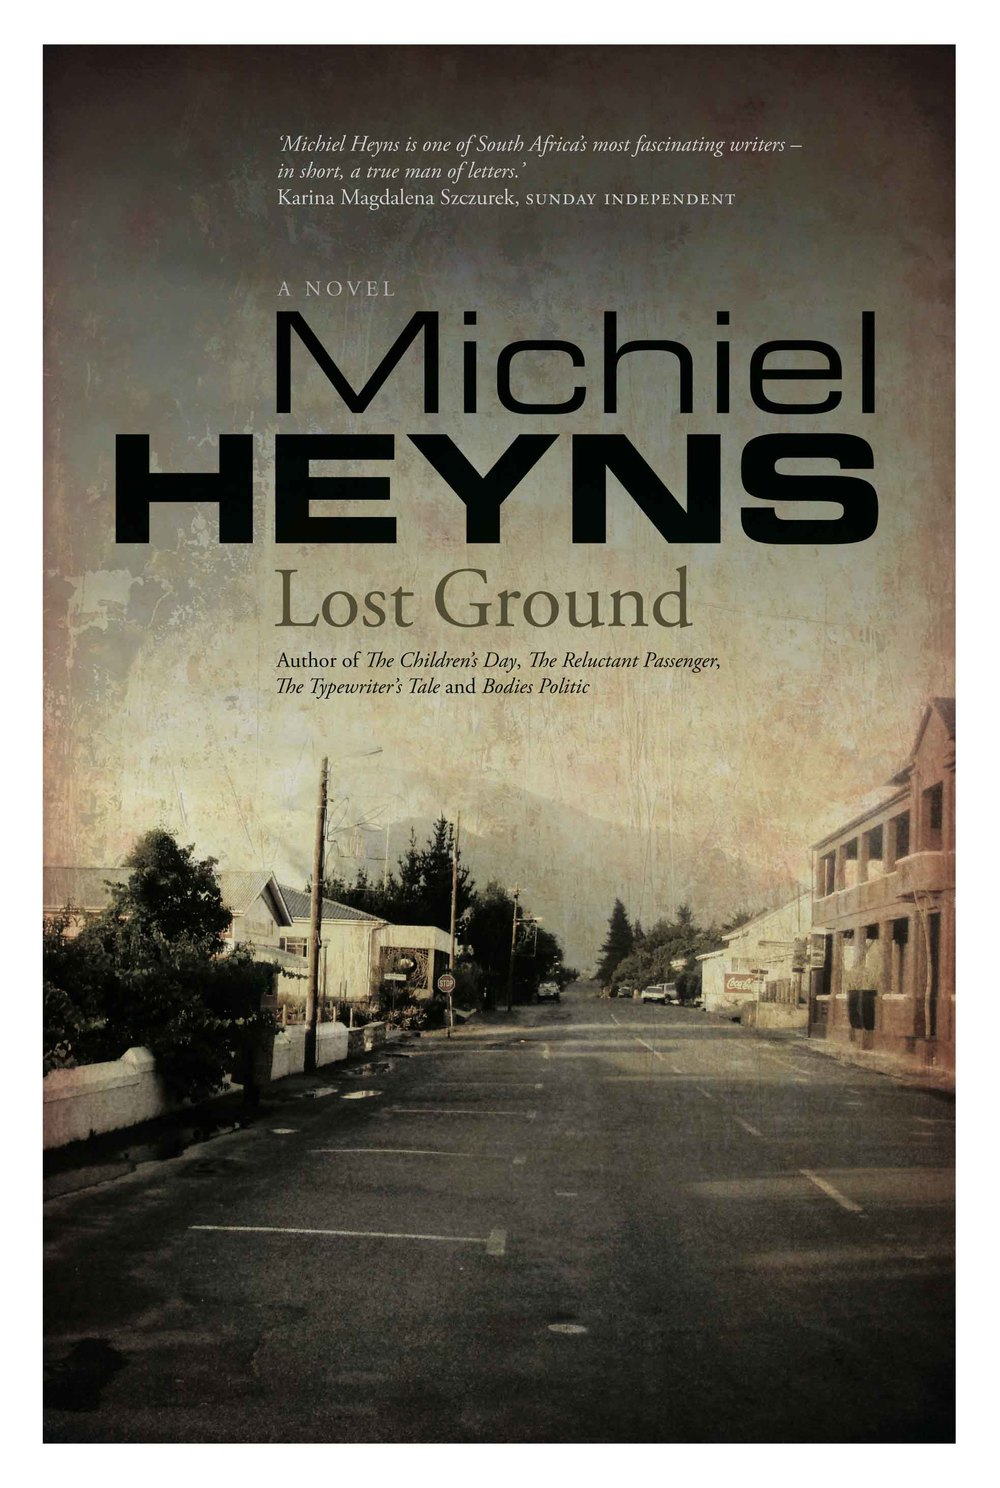 LOST GROUND SA front cover.jpg